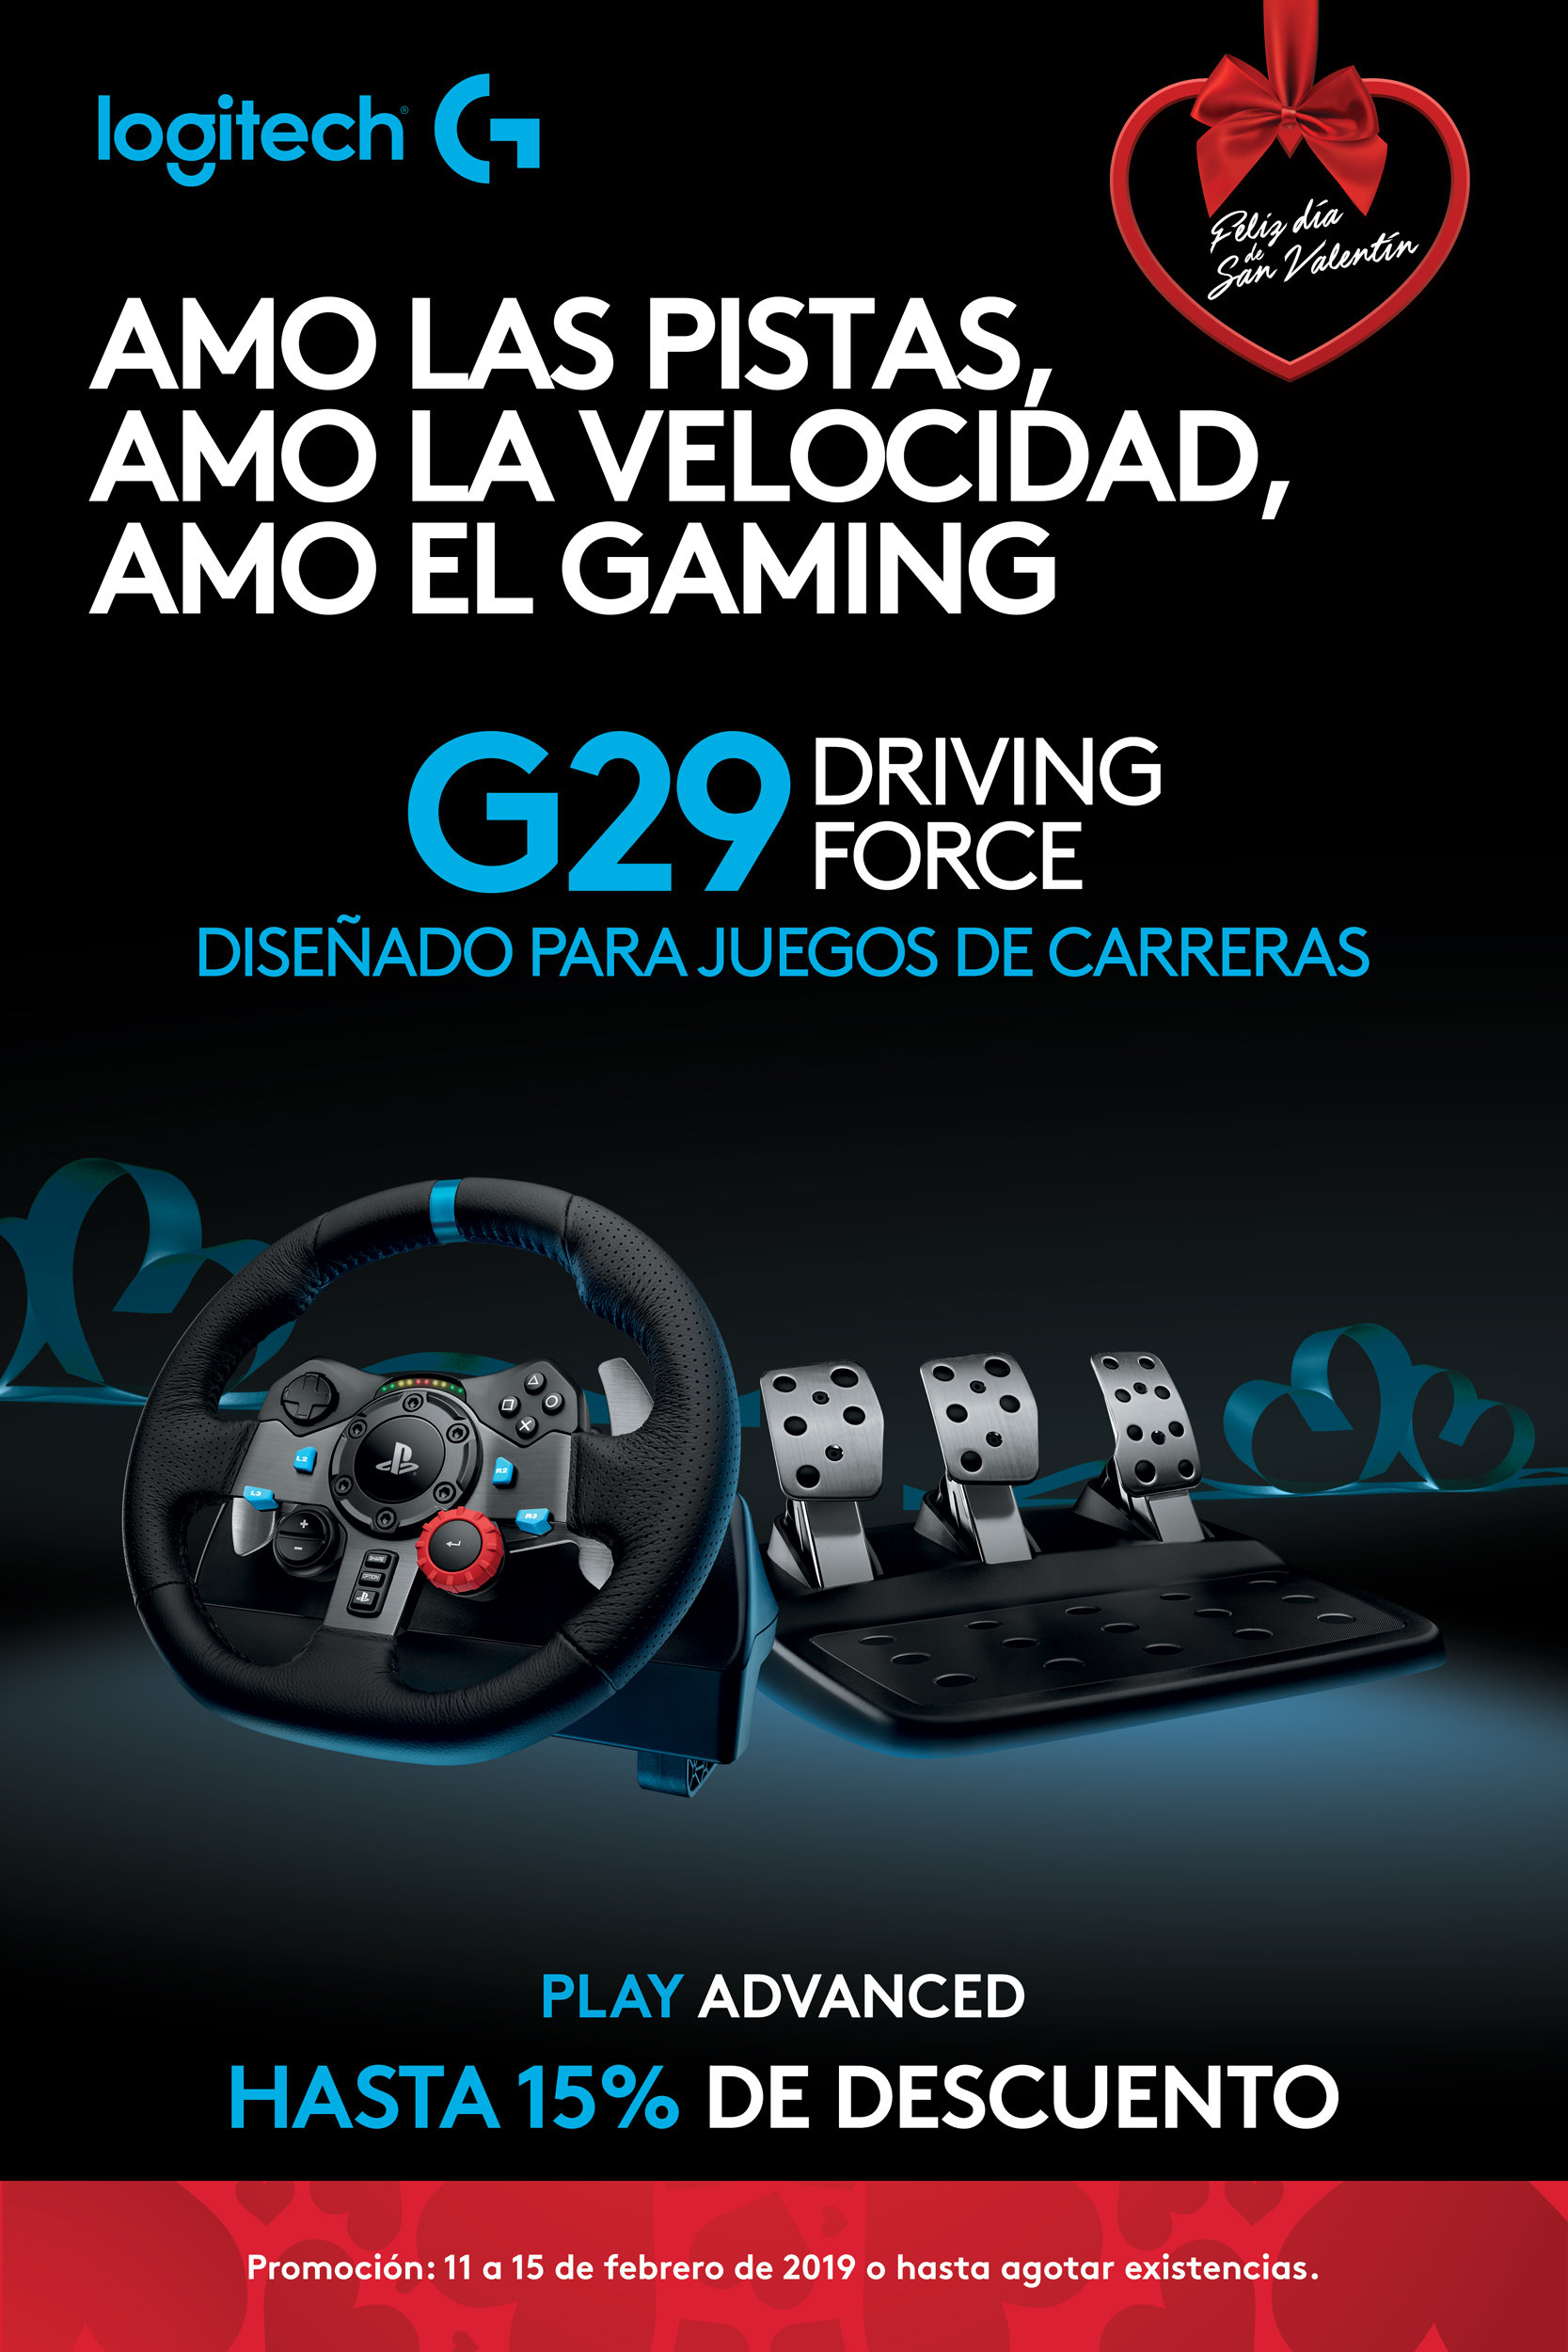 G29 - Driving Force - Logitech G